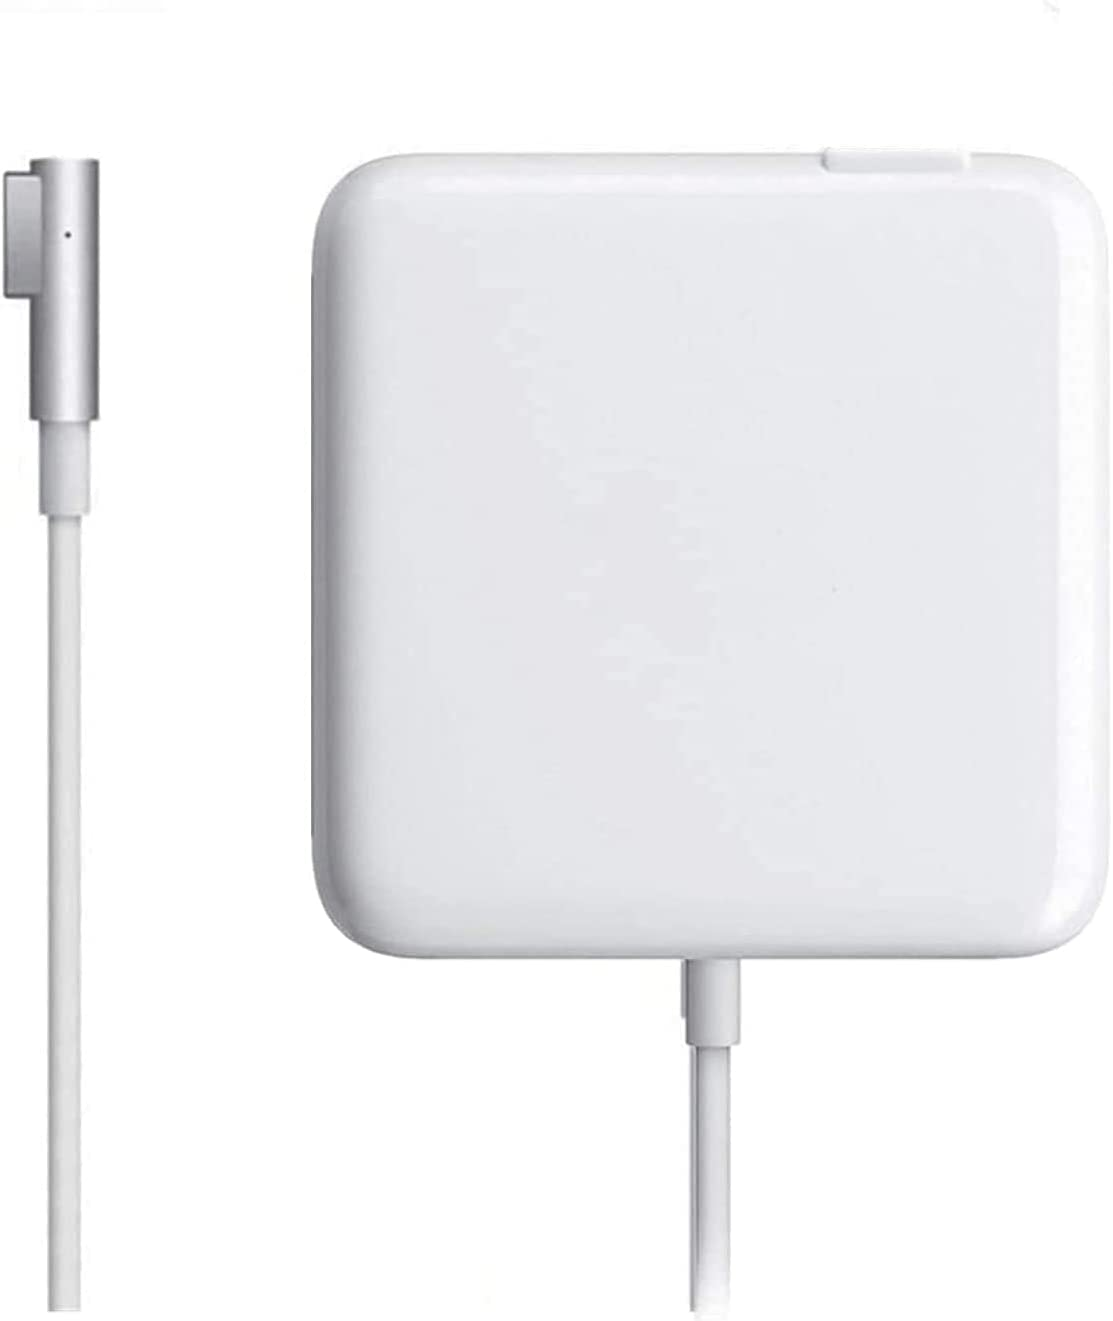 Replacement Mac Book Pro Charger 85W L-Tip Power Adapter Charger Cord for Old MaBook Pro 15-inch and 17-inch (Before Mid 2012 Models)